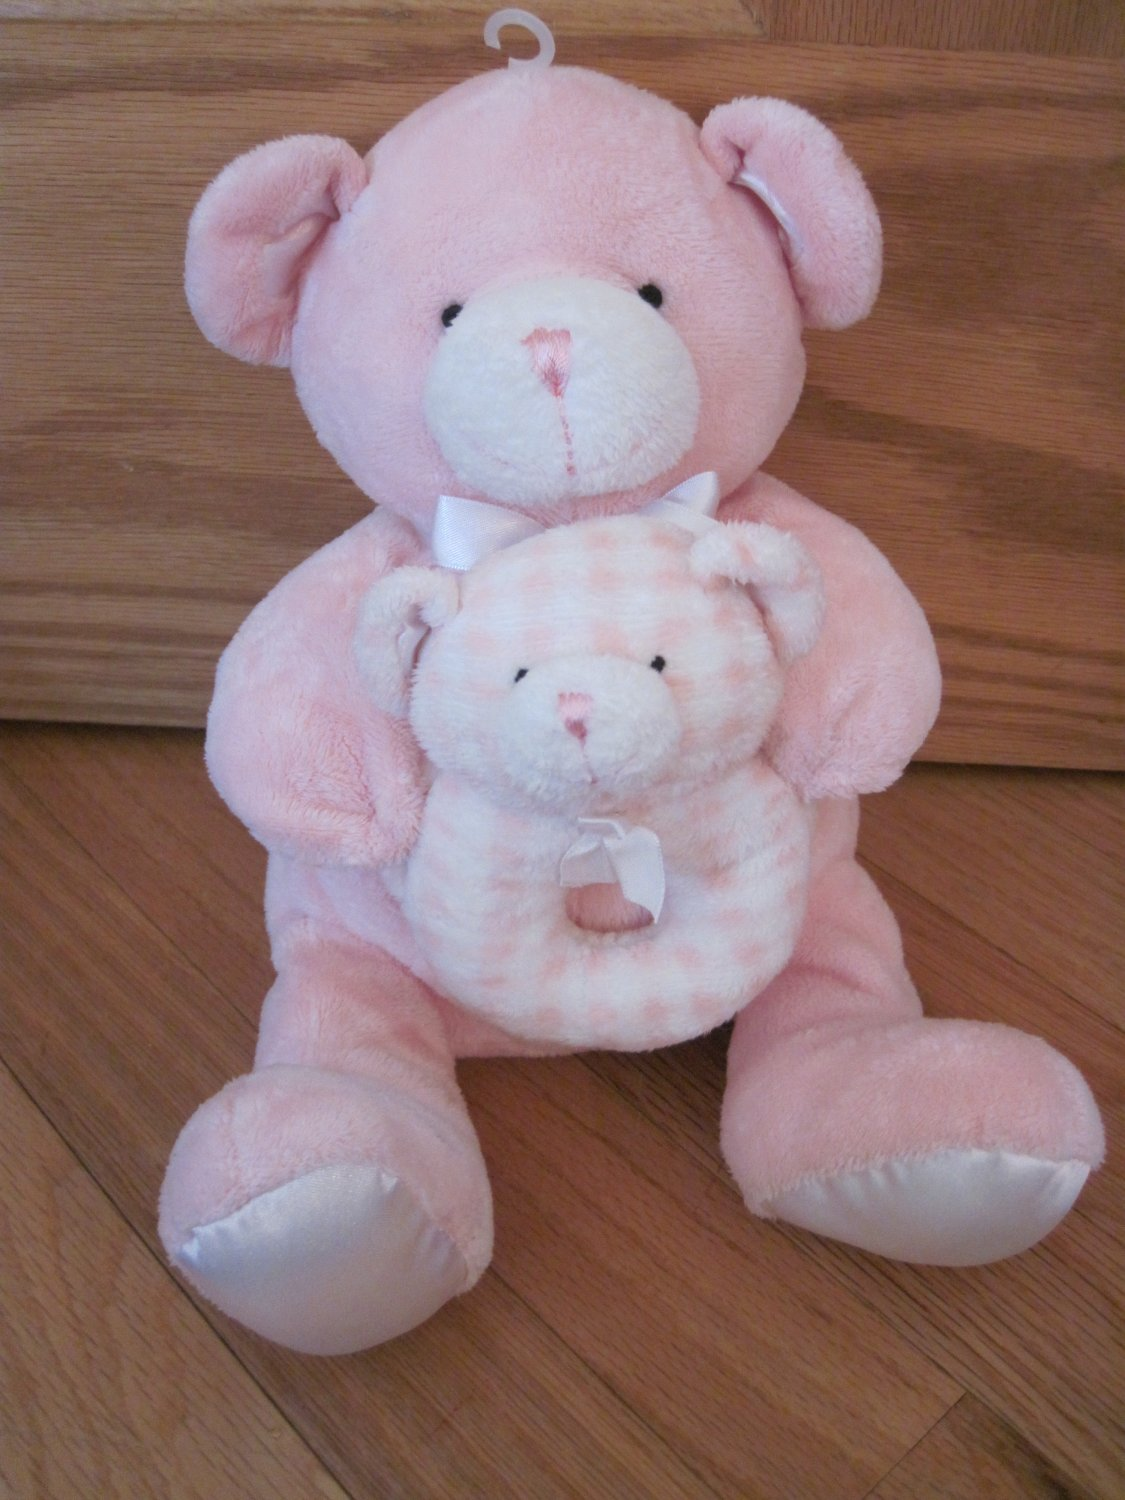 Kids Preferred Pink Plush Teddy Bear Holding Gingham Ring Bear Rattle Satin Ears Feet